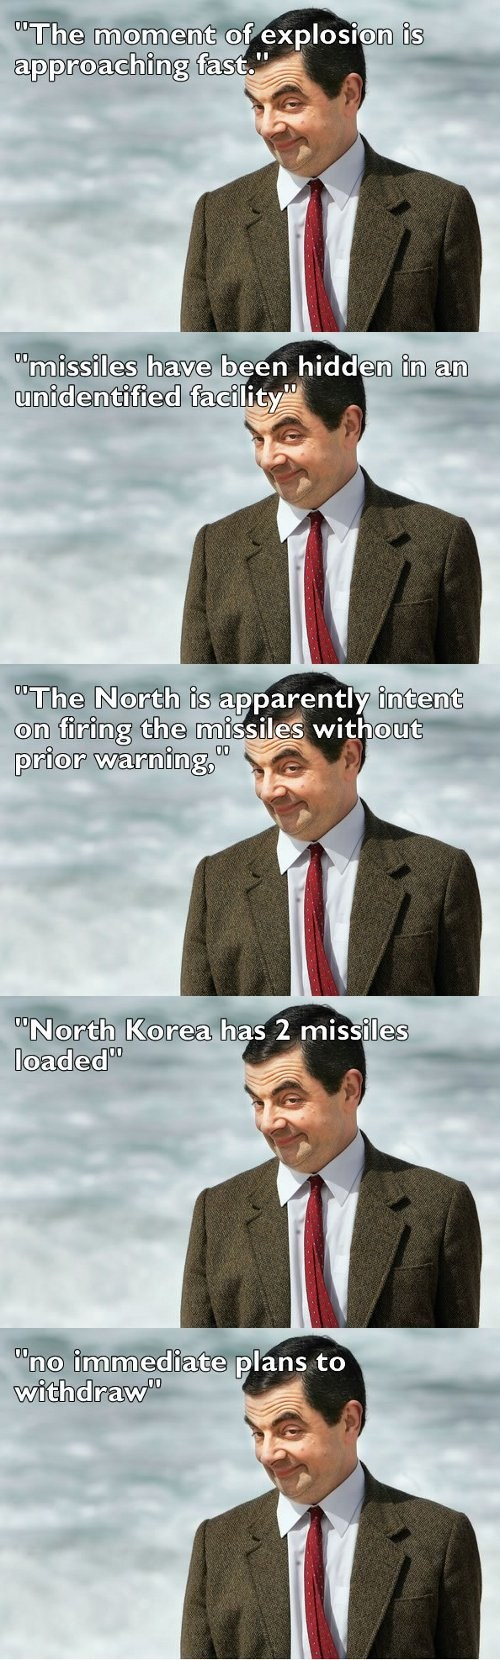 news mr bean North Korea if you know what i mean mr bean mr bean mr bean mr bean mr bean